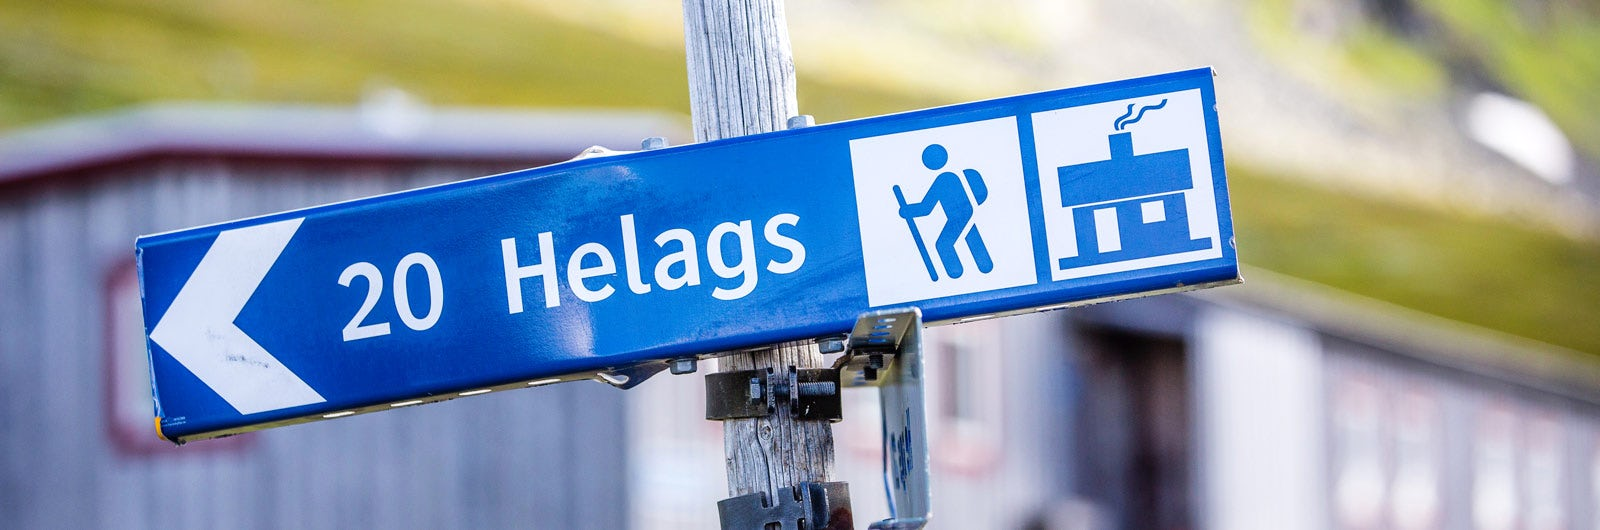 Blue sign pointing towards Helags